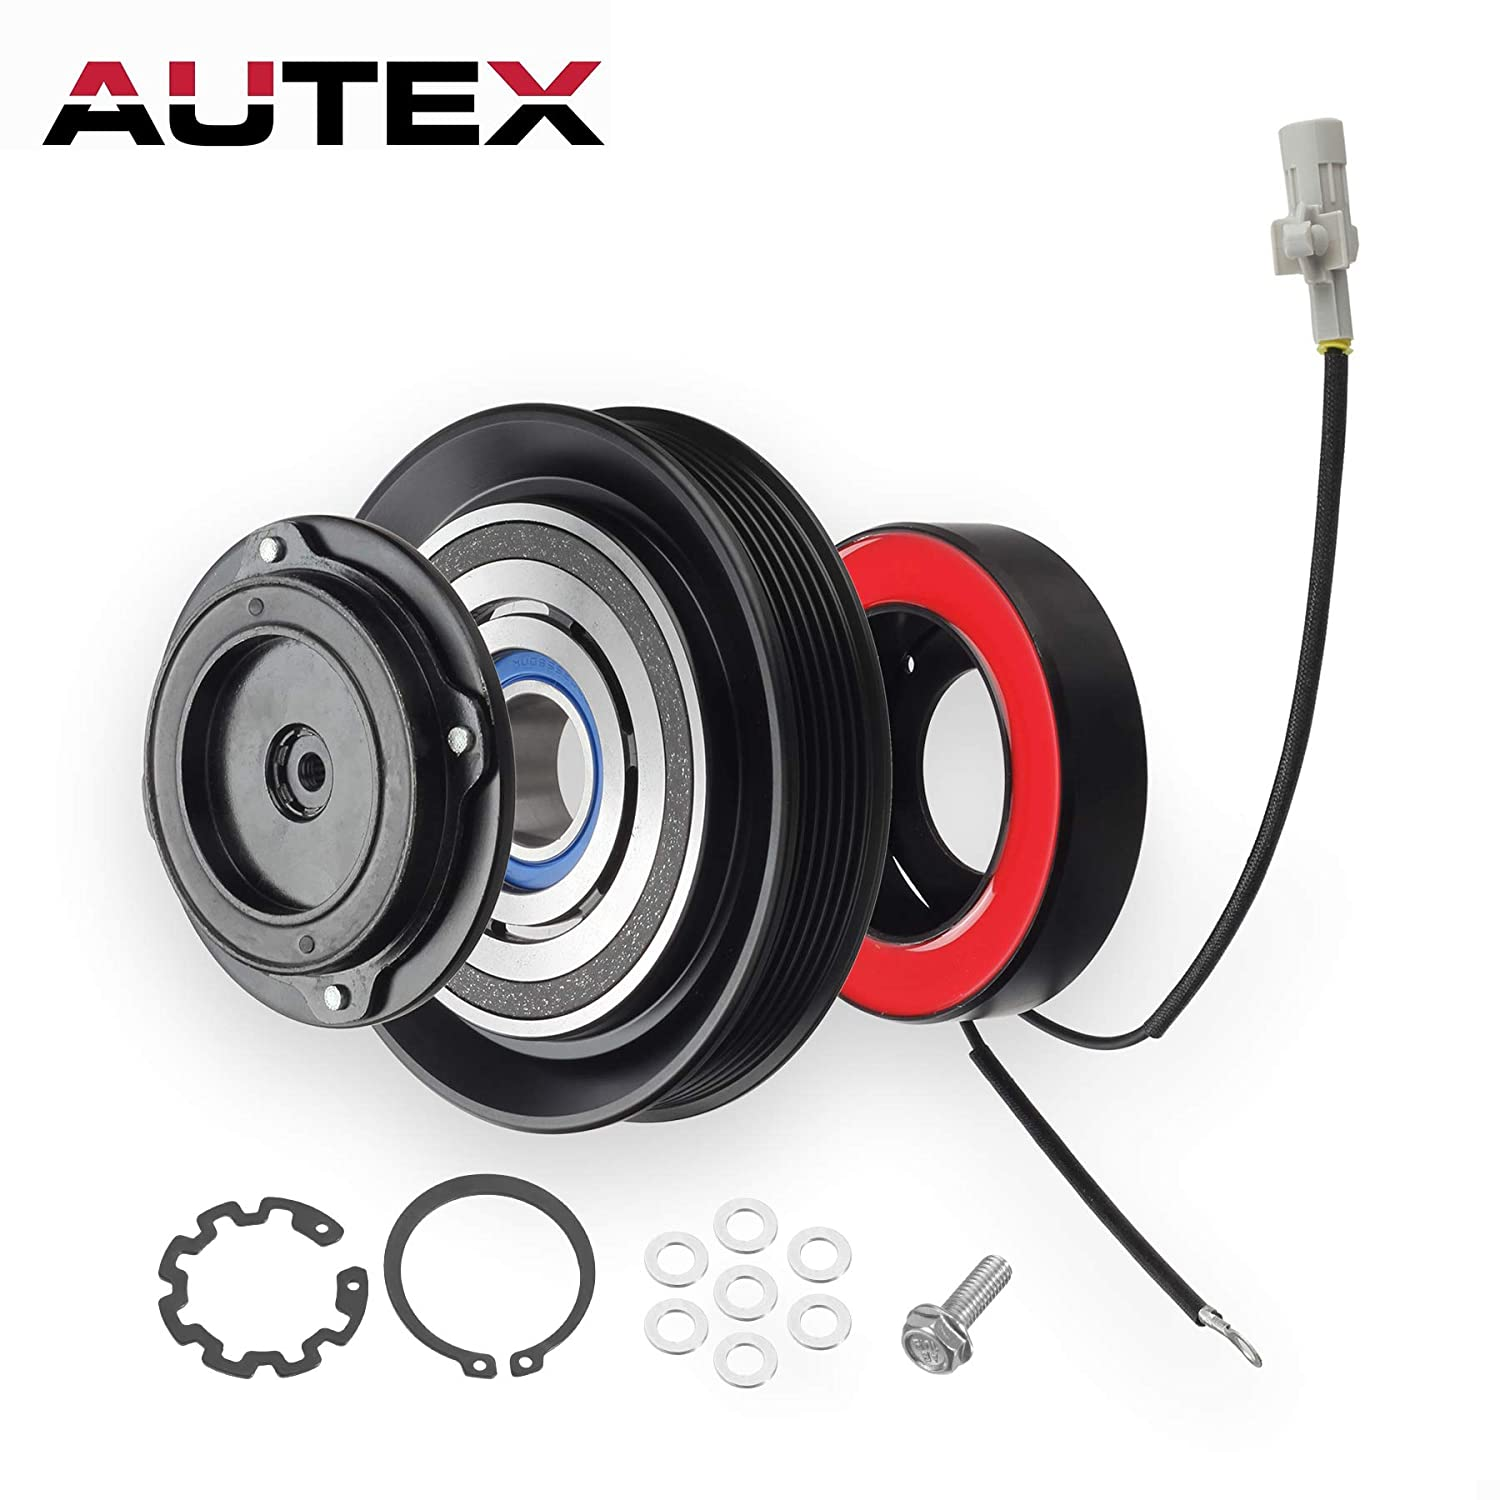 AUTEX AC A/C Compressor Clutch Coil Assembly Kit 88320-02120 447220-4351 447220-4350 Replacement for 2003 2004 2005 2006 2007 2008 Toyota Corolla 2003 2004 2005 2006 2007 Toyota Matrix 1.8L